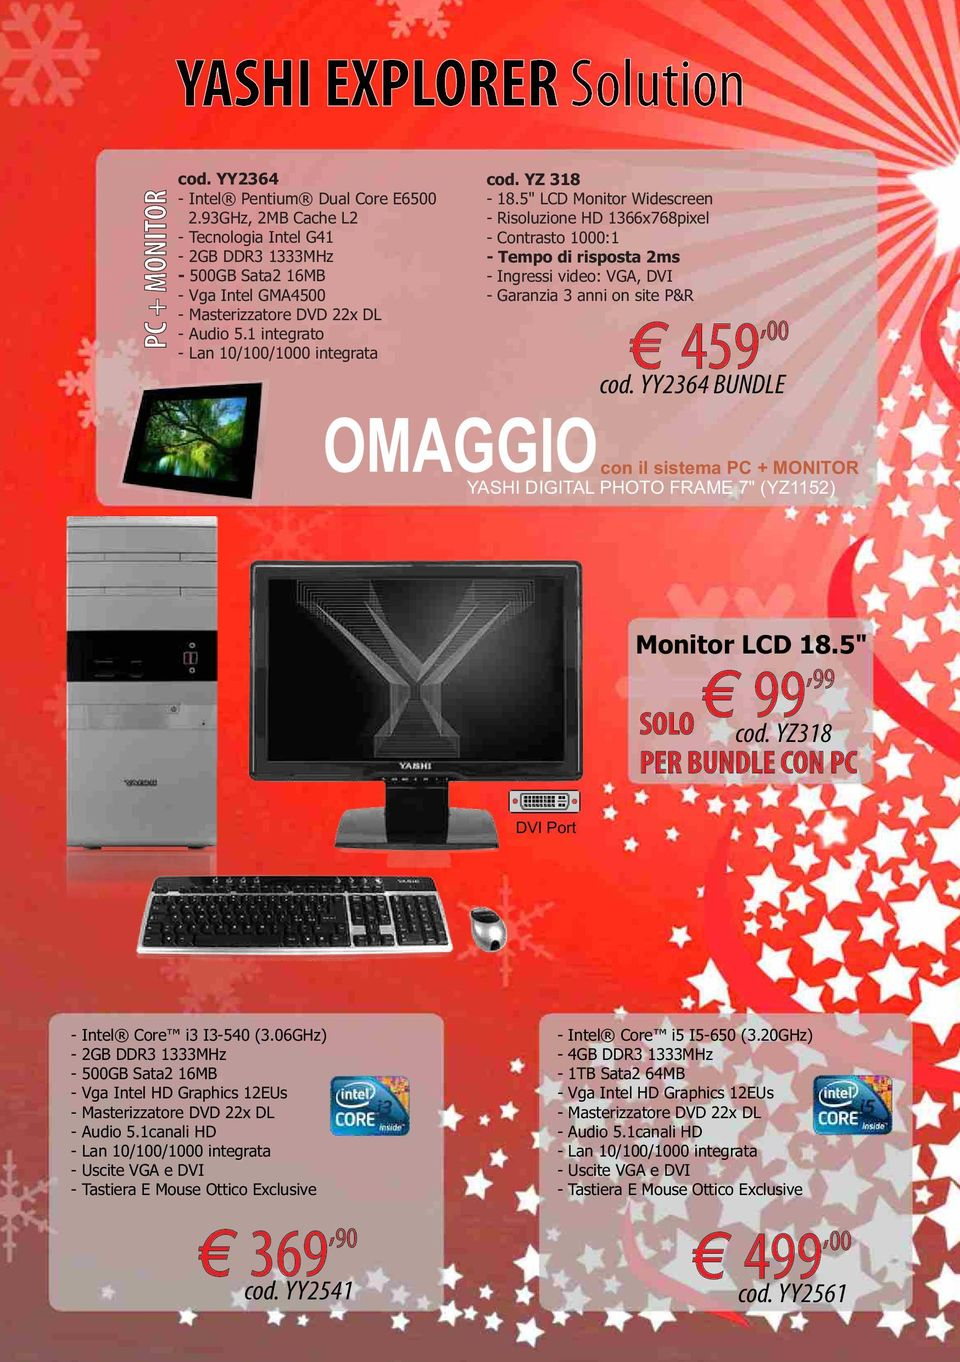 "YY2364 BUNDLE con il sistema PC + MONITOR YASHI DIGITAL PHOTO FRAME 7"" (YZ1152) Monitor LCD 18.5"", 99 99 SOLO cod. YZ318 PER BUNDLE CON PC DVI Port - Intel Core i3 I3-540 (3."